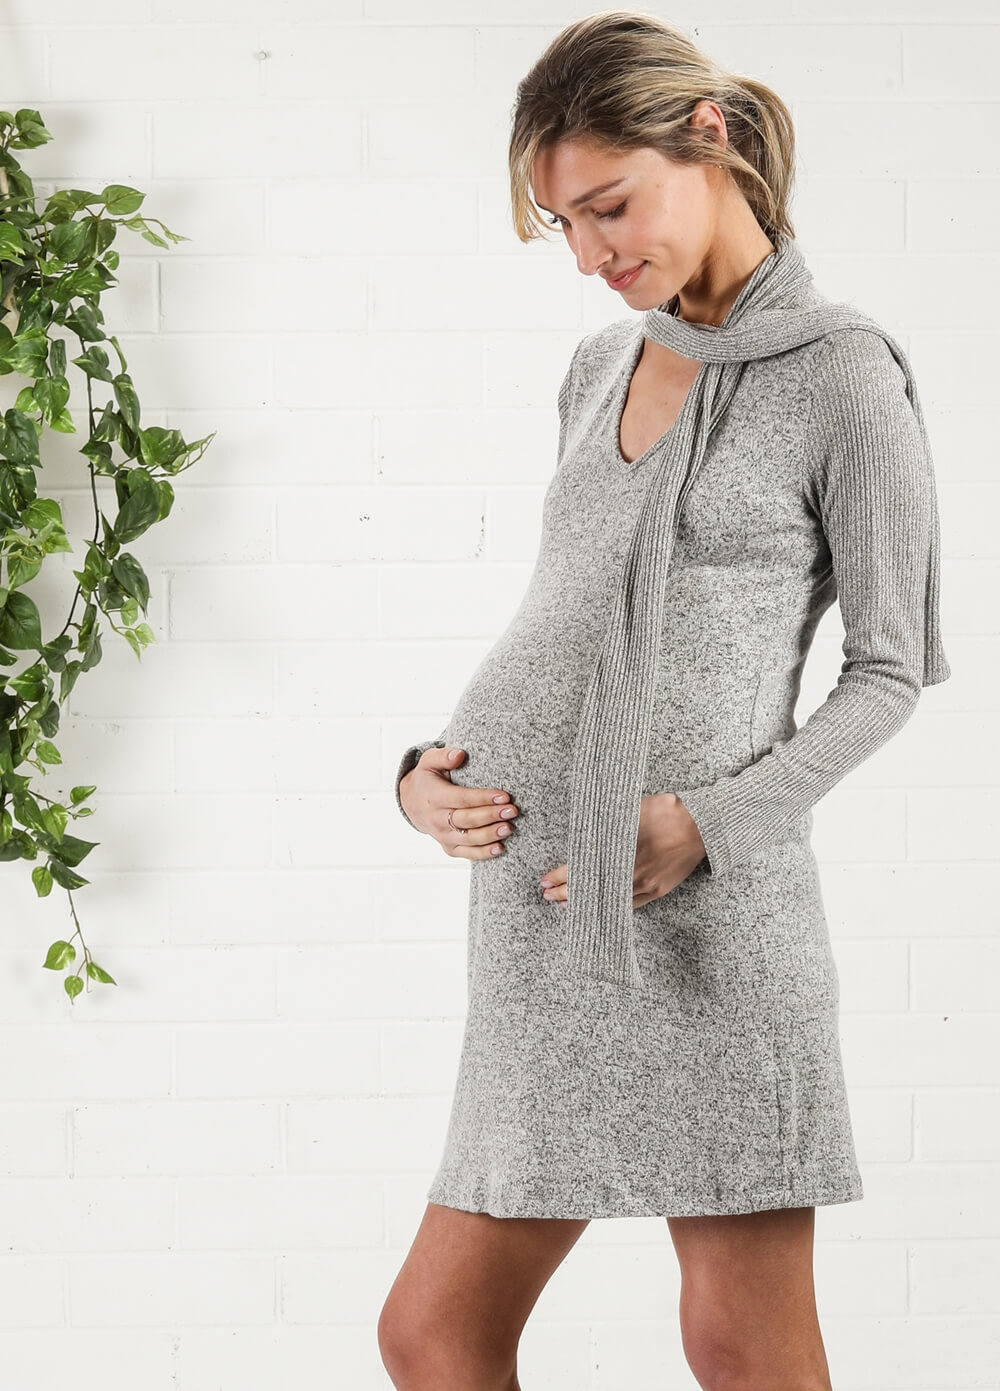 Maternal America - Scarf Tie Maternity Knit Dress | Queen Bee